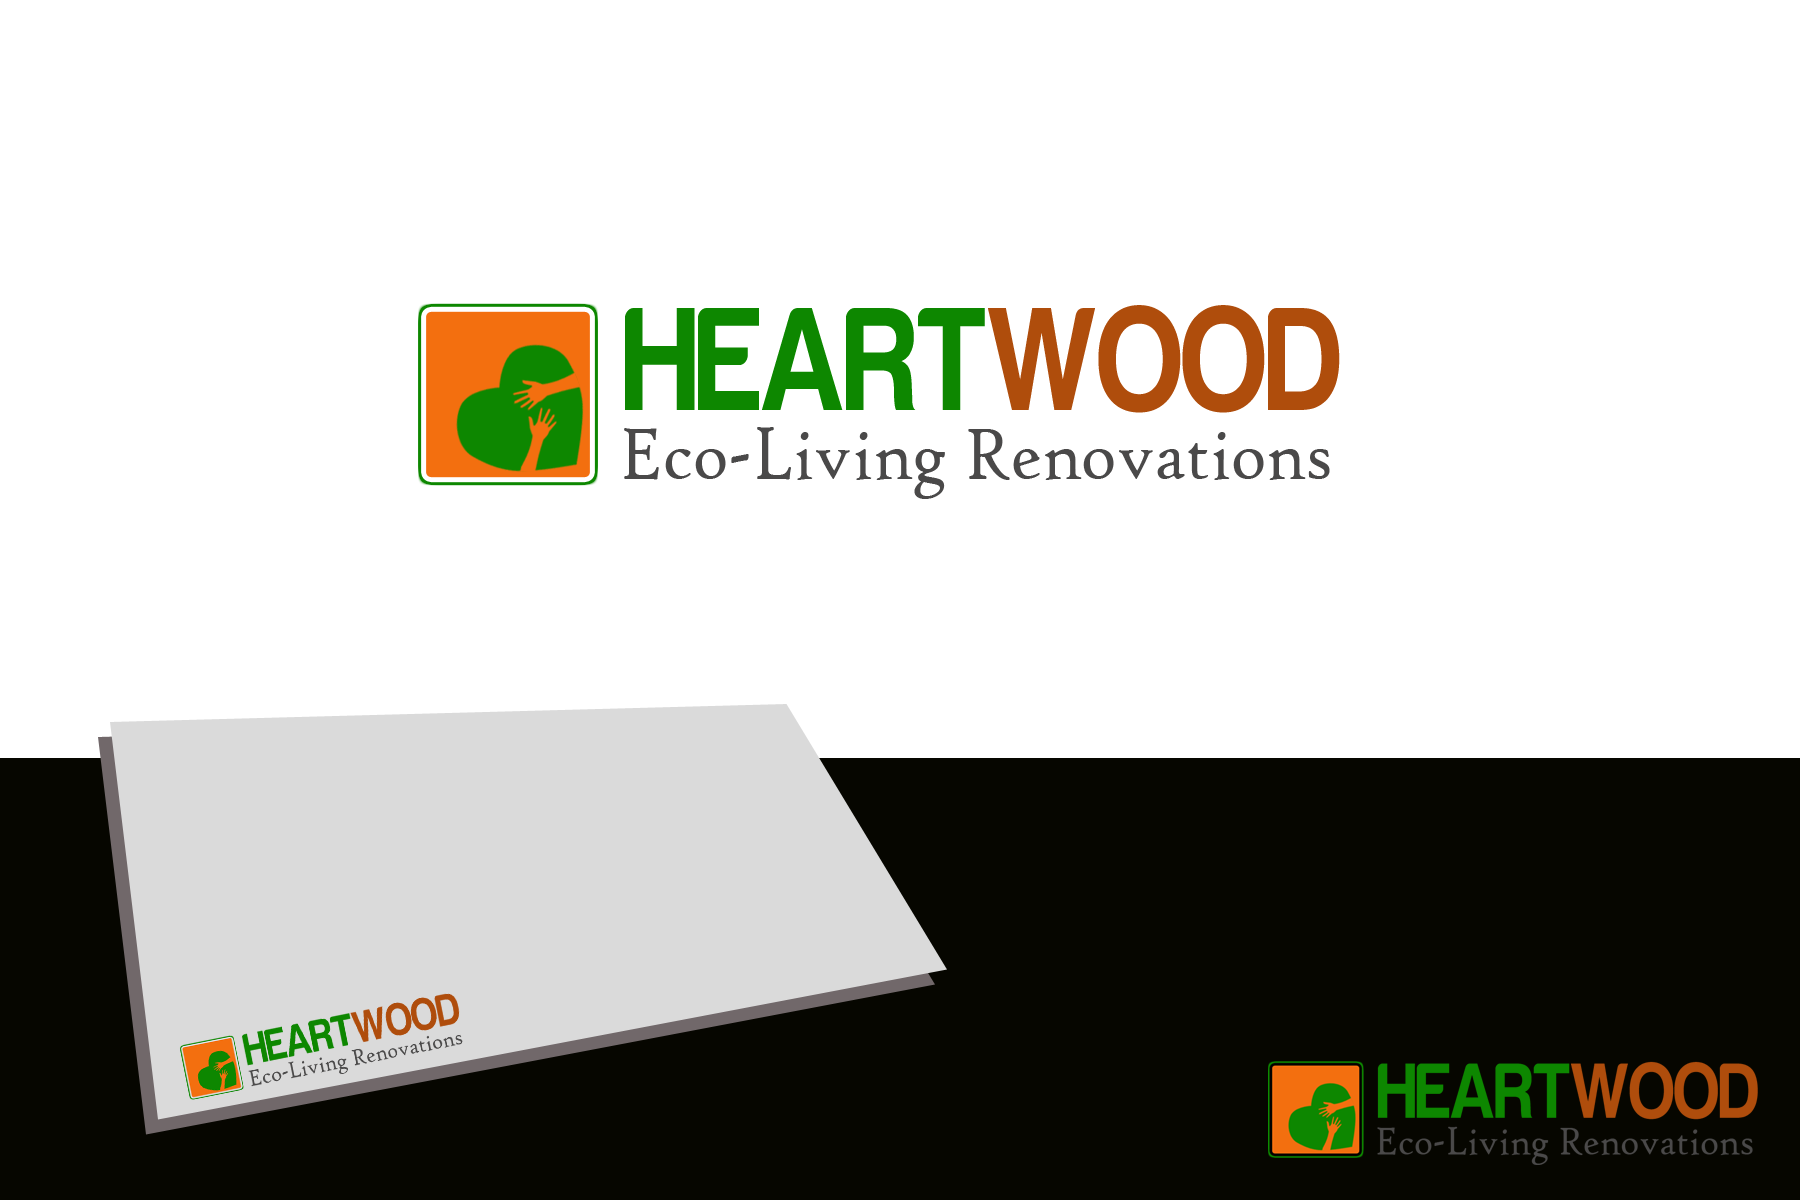 Logo Design by Golden_Hand - Entry No. 46 in the Logo Design Contest New Logo Design for Heartwood Eco-Living Renovations.